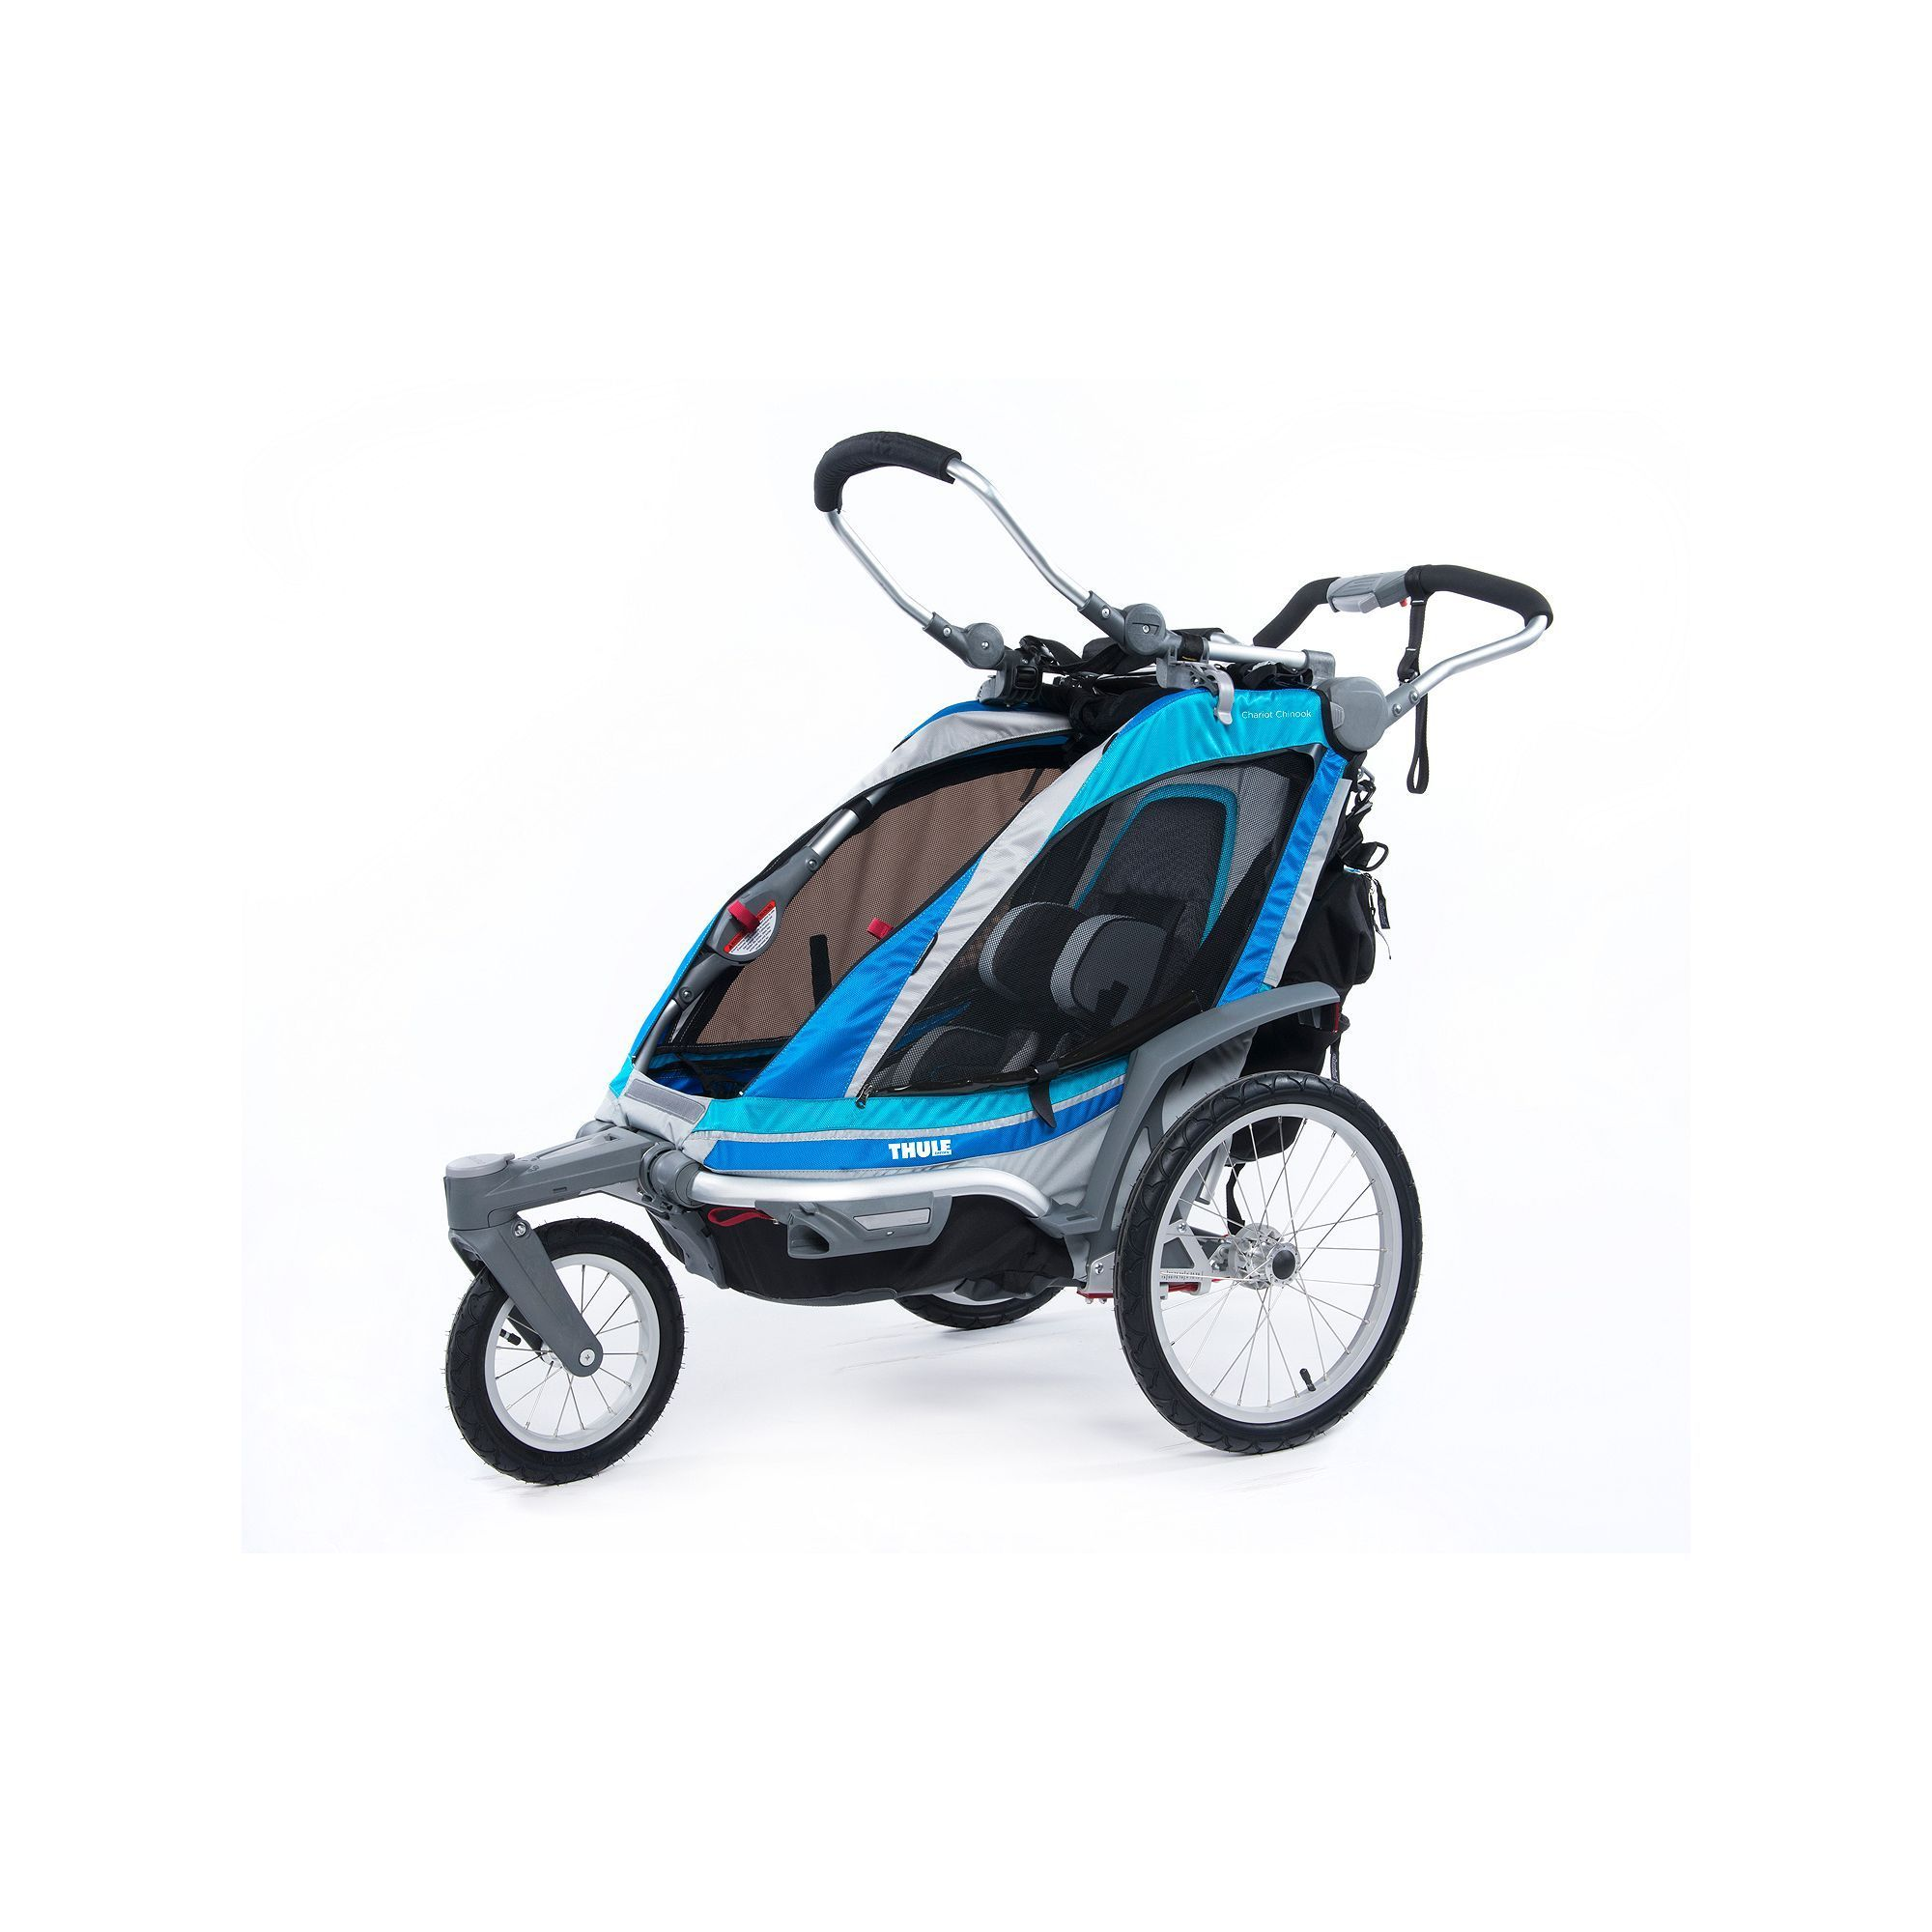 Thule Chariot Chinook 1 MultiSport Child Carrier & Stroller